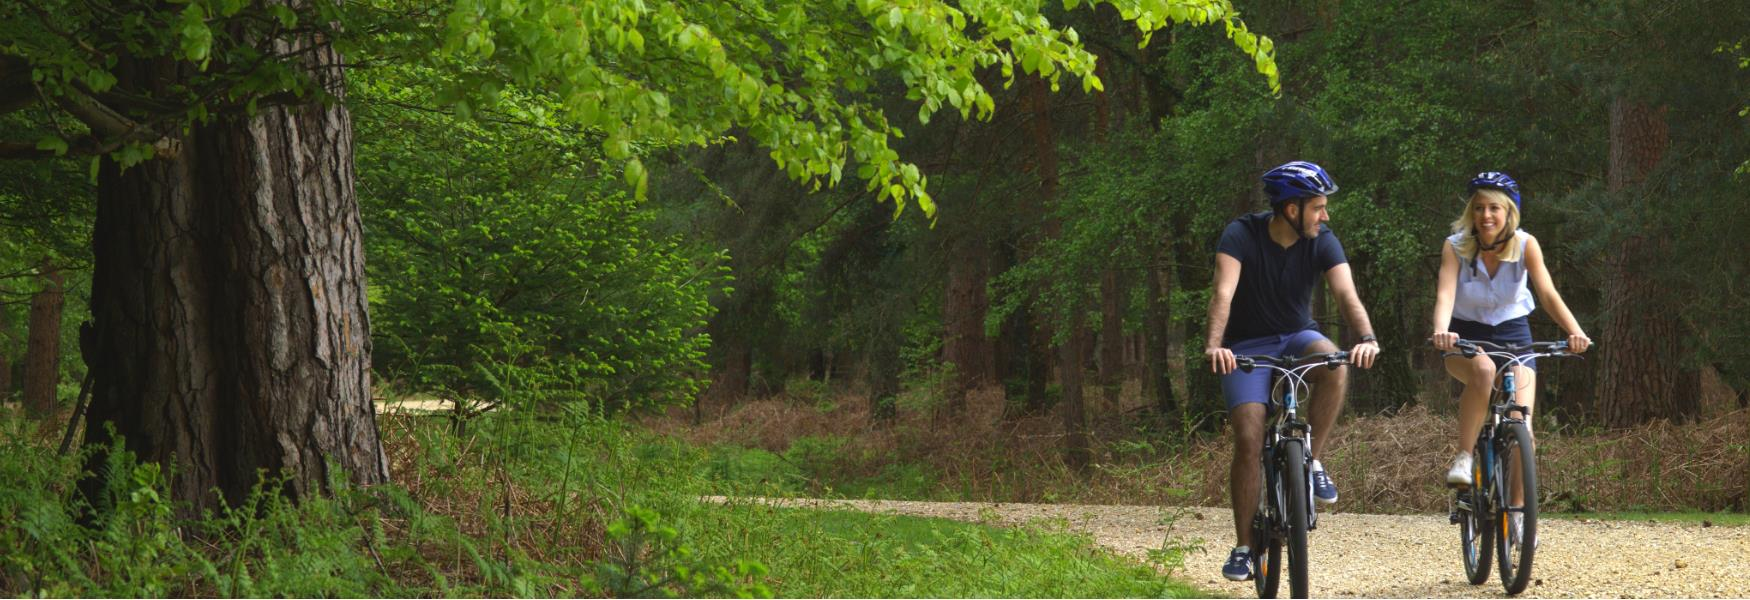 new forest cycle routes - cycling routes in hampshire